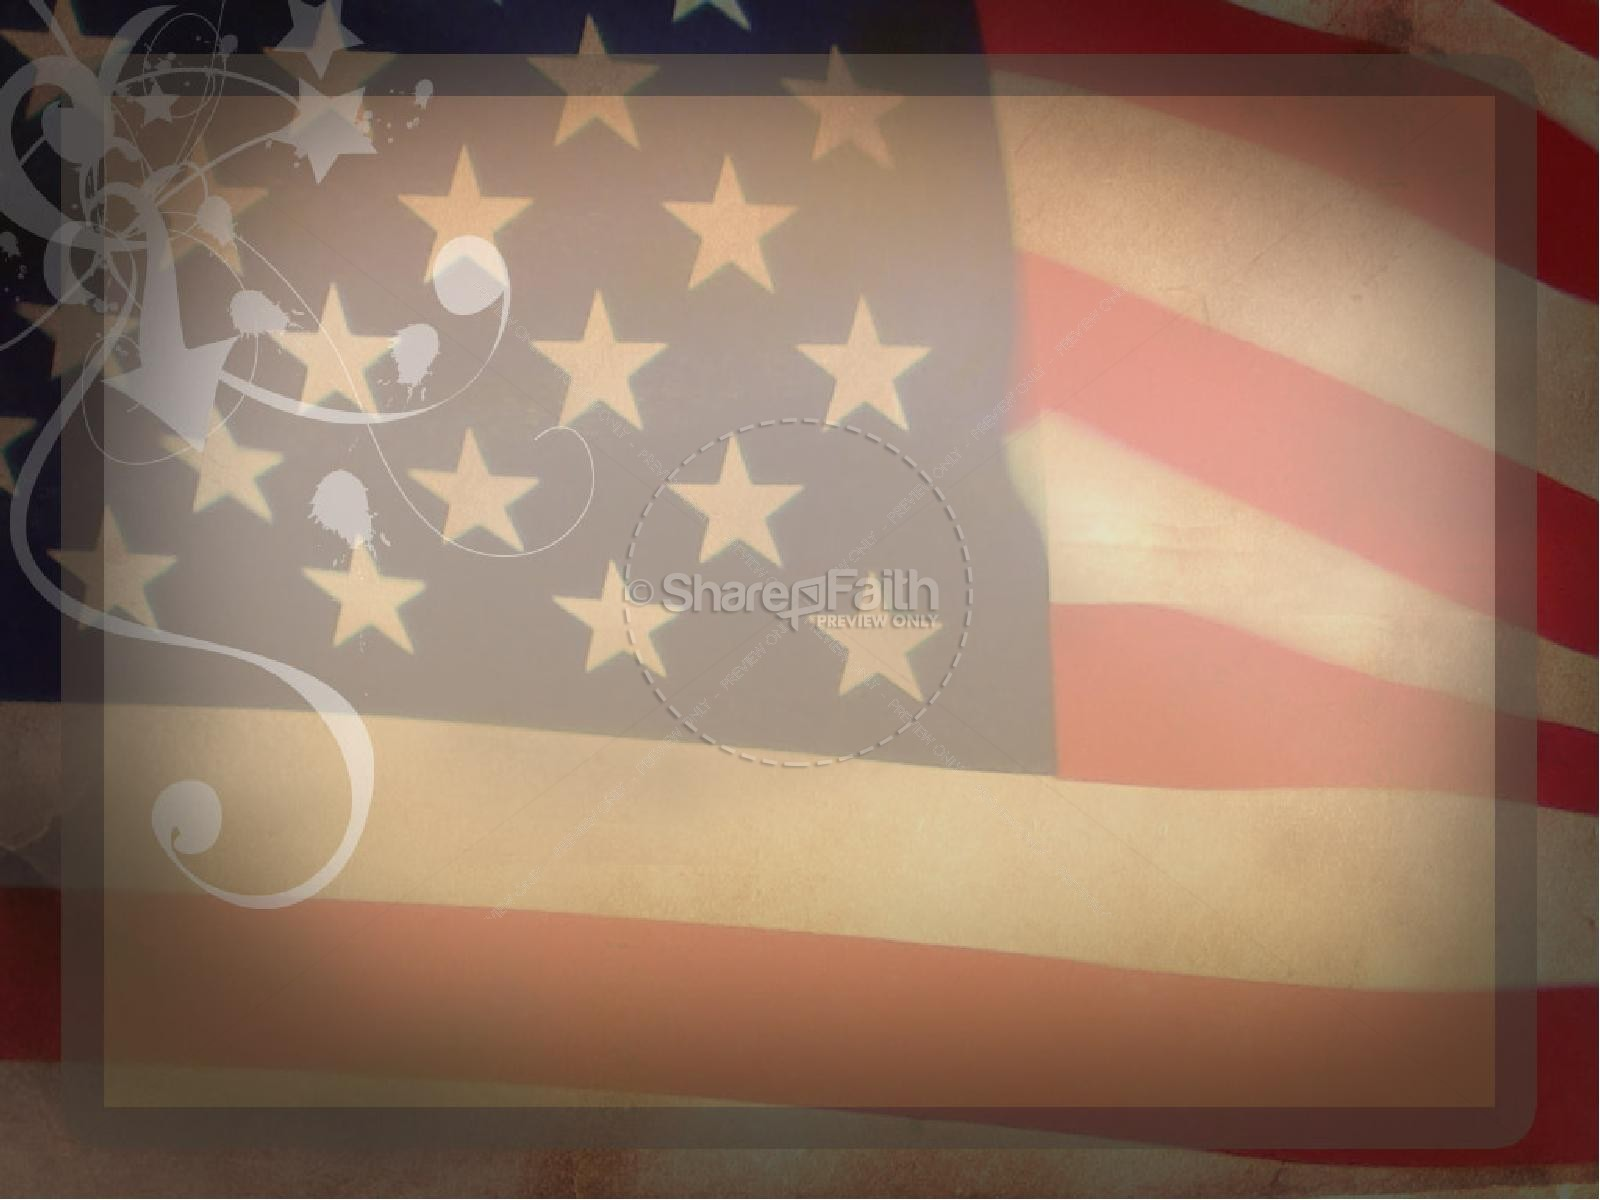 Patriotic powerpoint background pc patriotic powerpoint patriotic american flag memorial day powerpoints american flag background powerpointhintergrund patriotic powerpoint templates alramifo Images